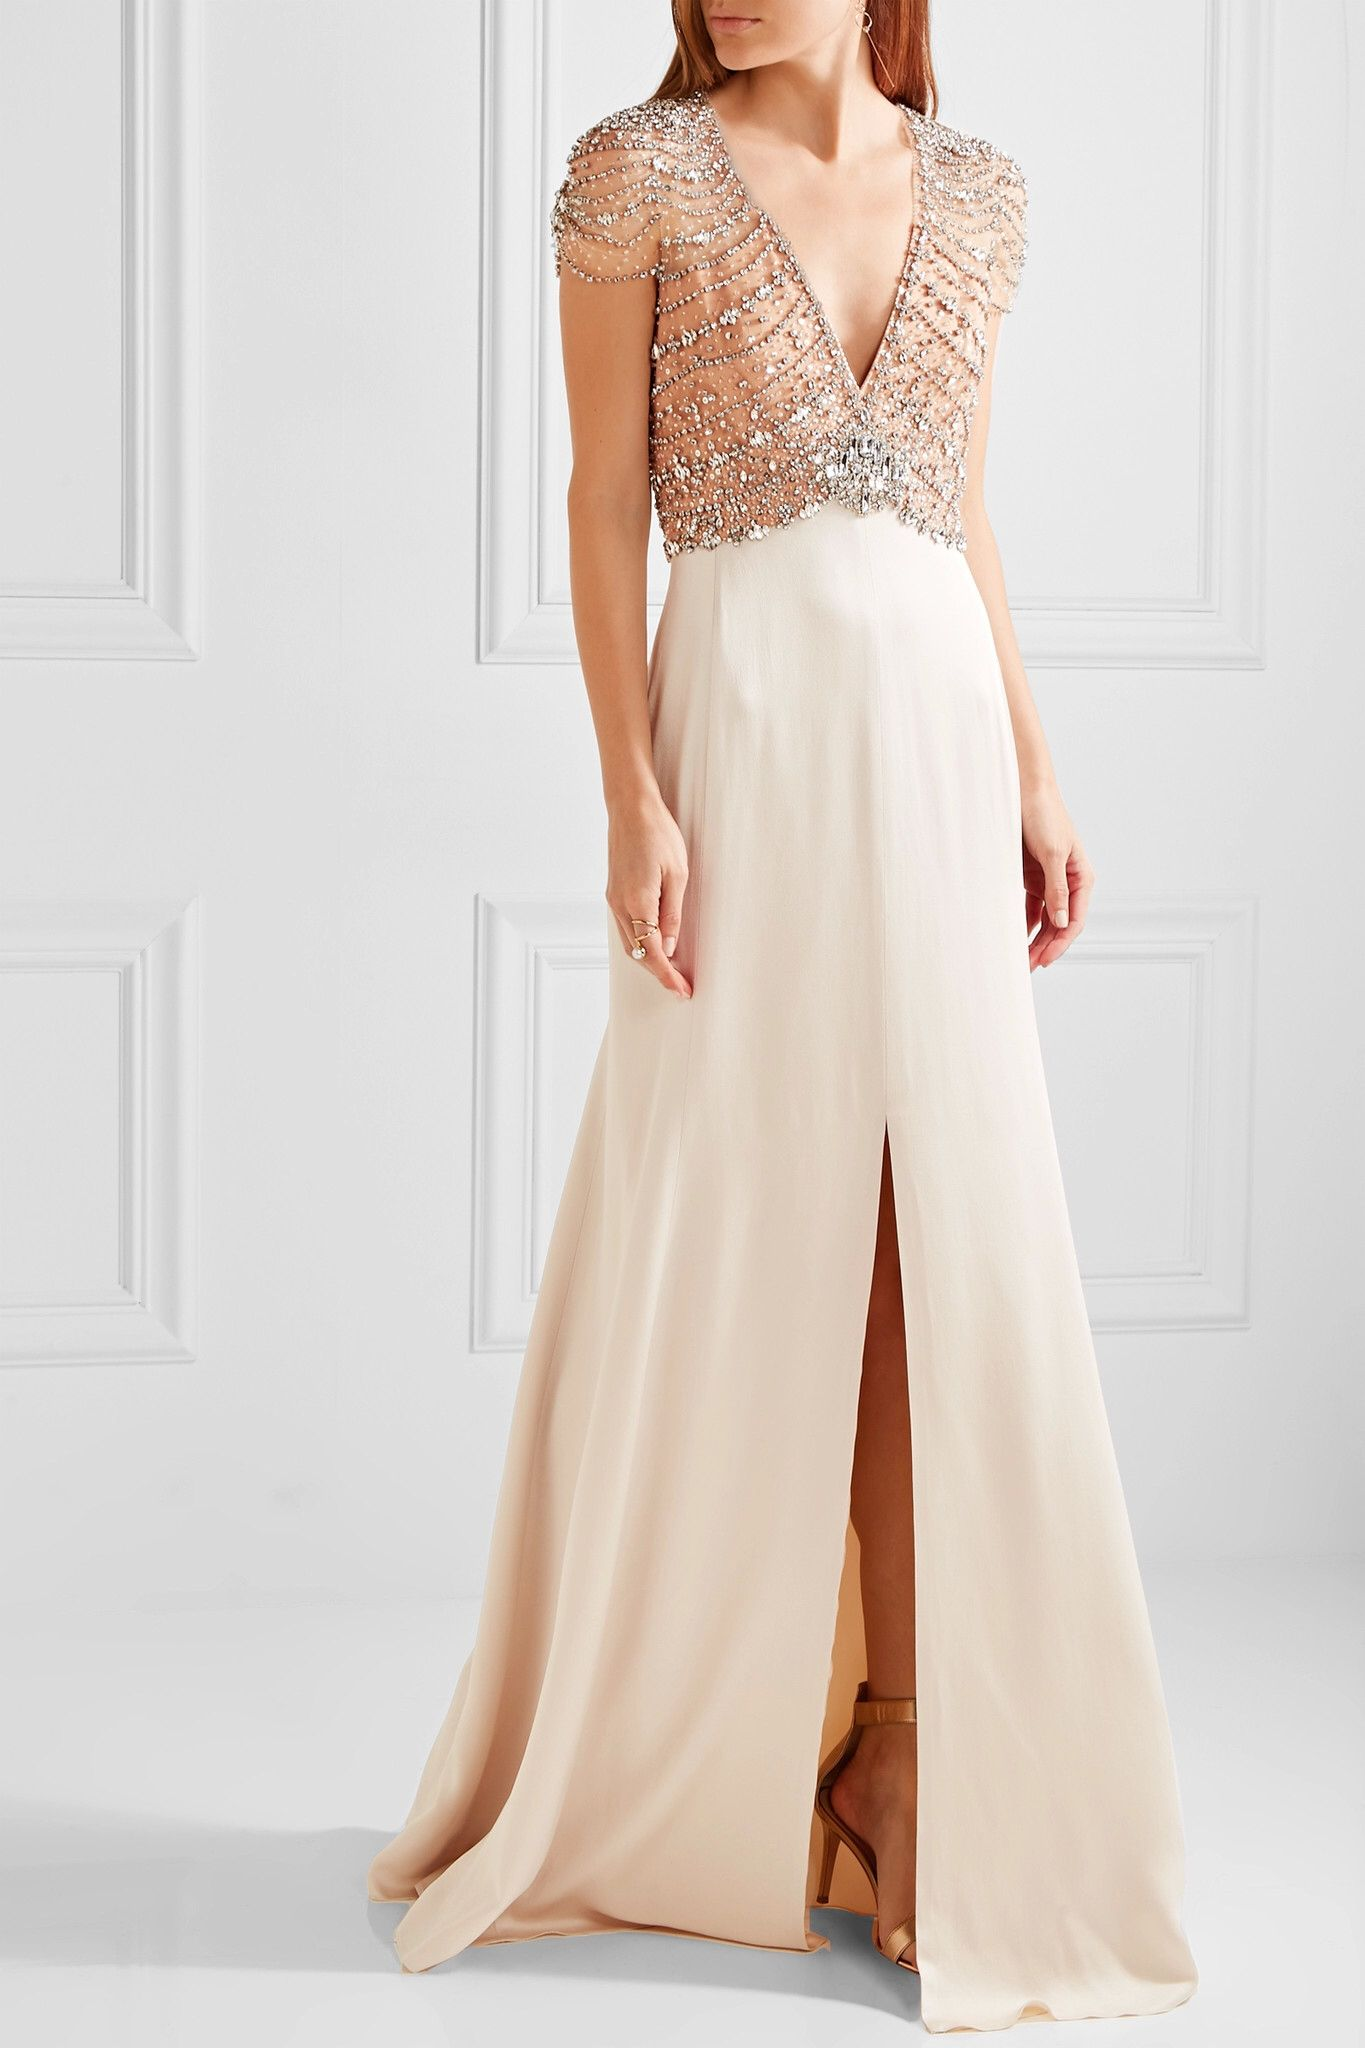 Best wedding dresses for body type  Pin by Fay Carter on Wedding Dresses  Pinterest  Crepes Jenny